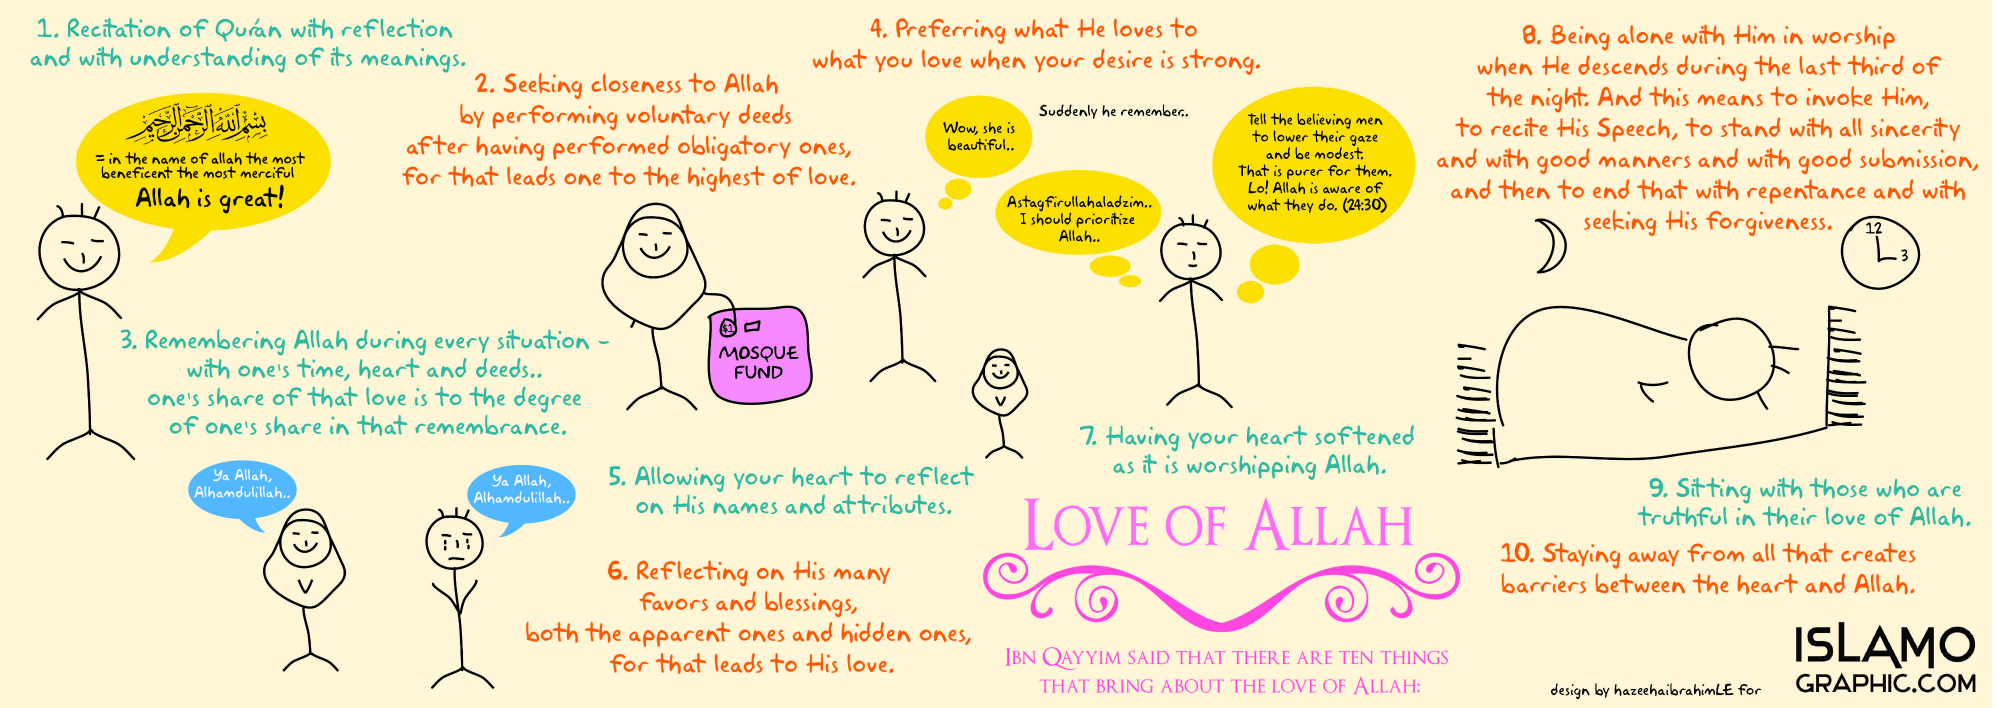 10 Things That Bring About the Love of ALLAH!